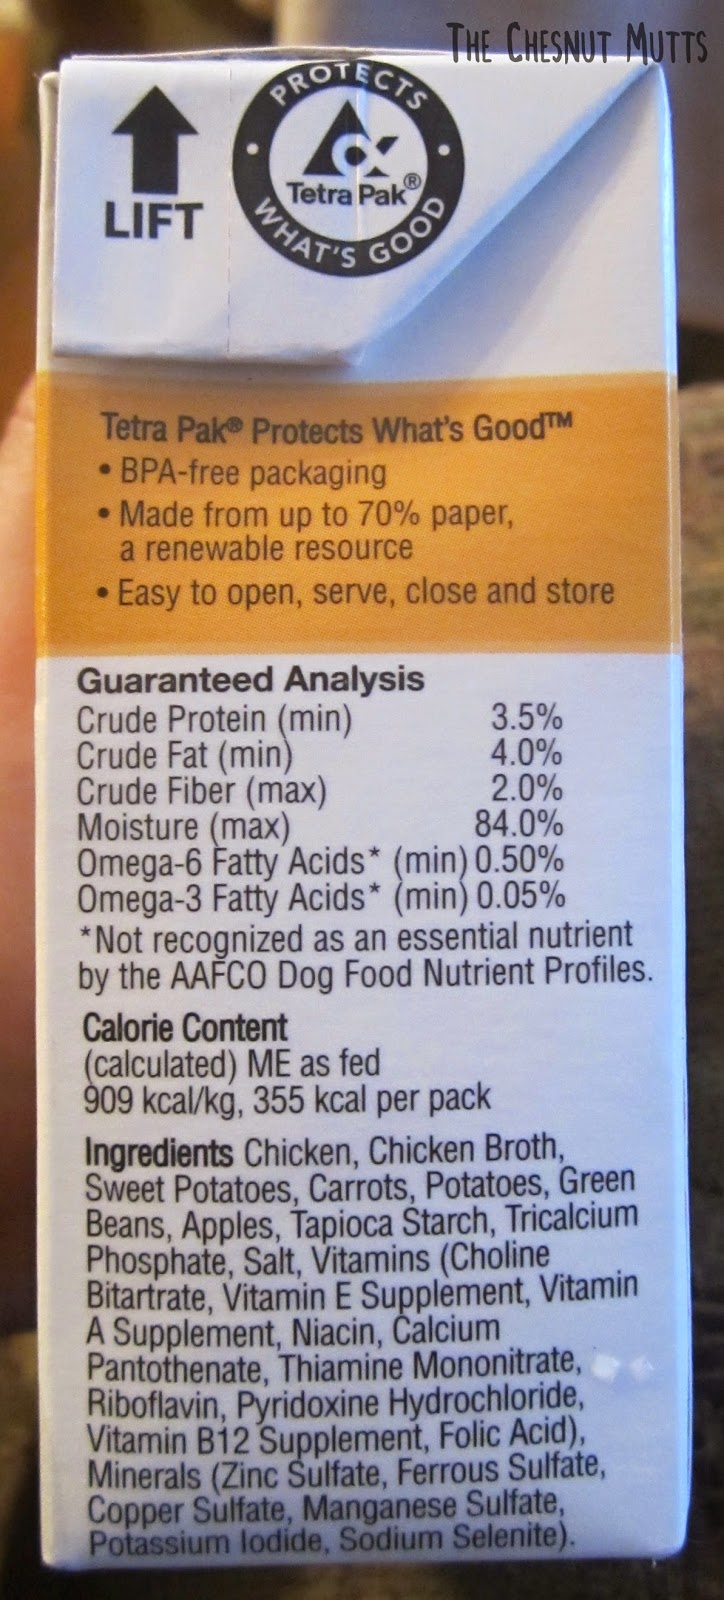 Tetra Pak Protects What's Good. Ingredients for the stew